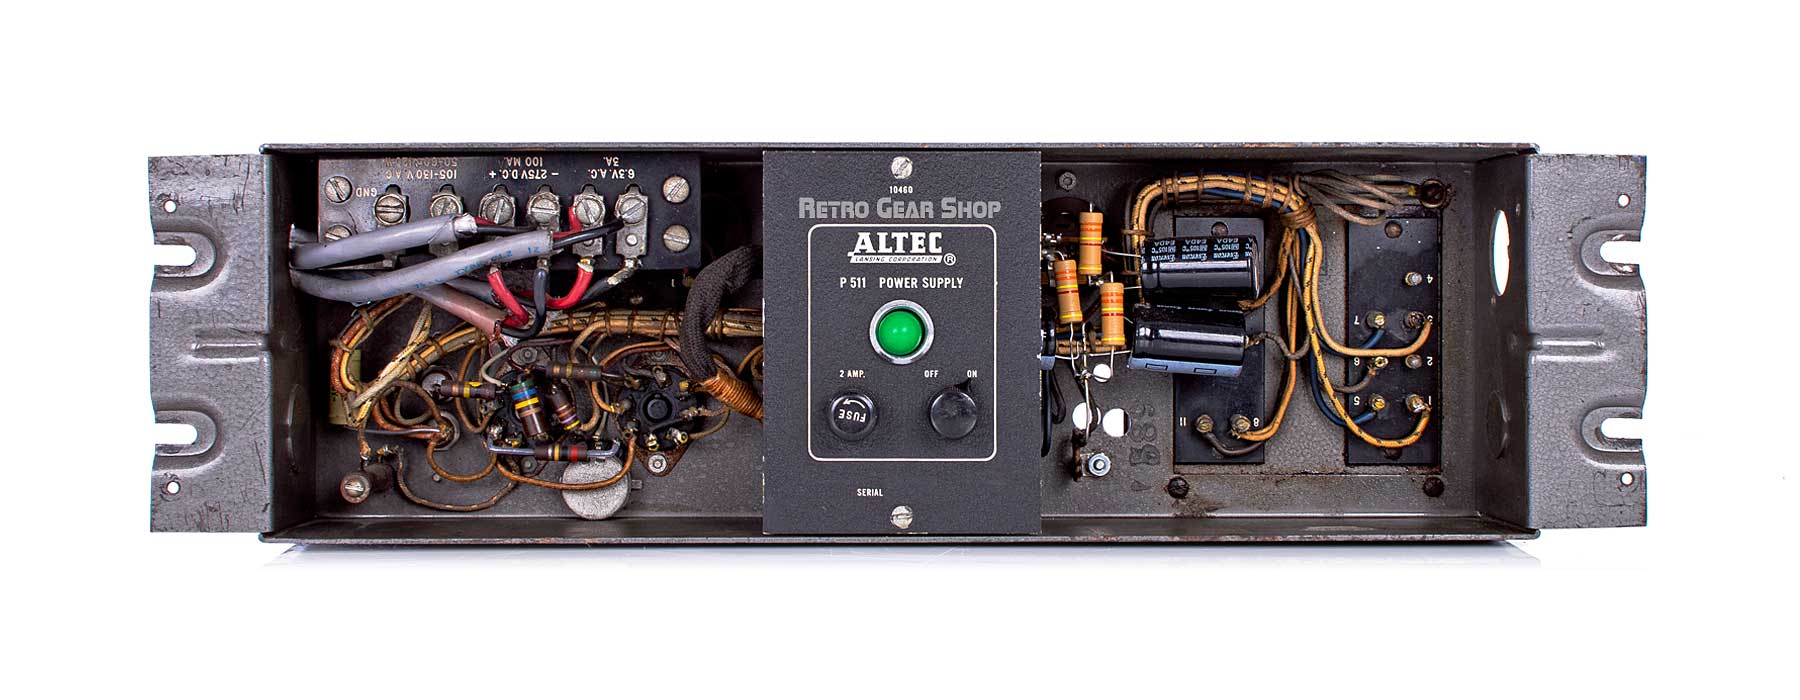 Altec 322C Vintage Limiter Amplifier Tube Compressor P511 Power Supply Internals